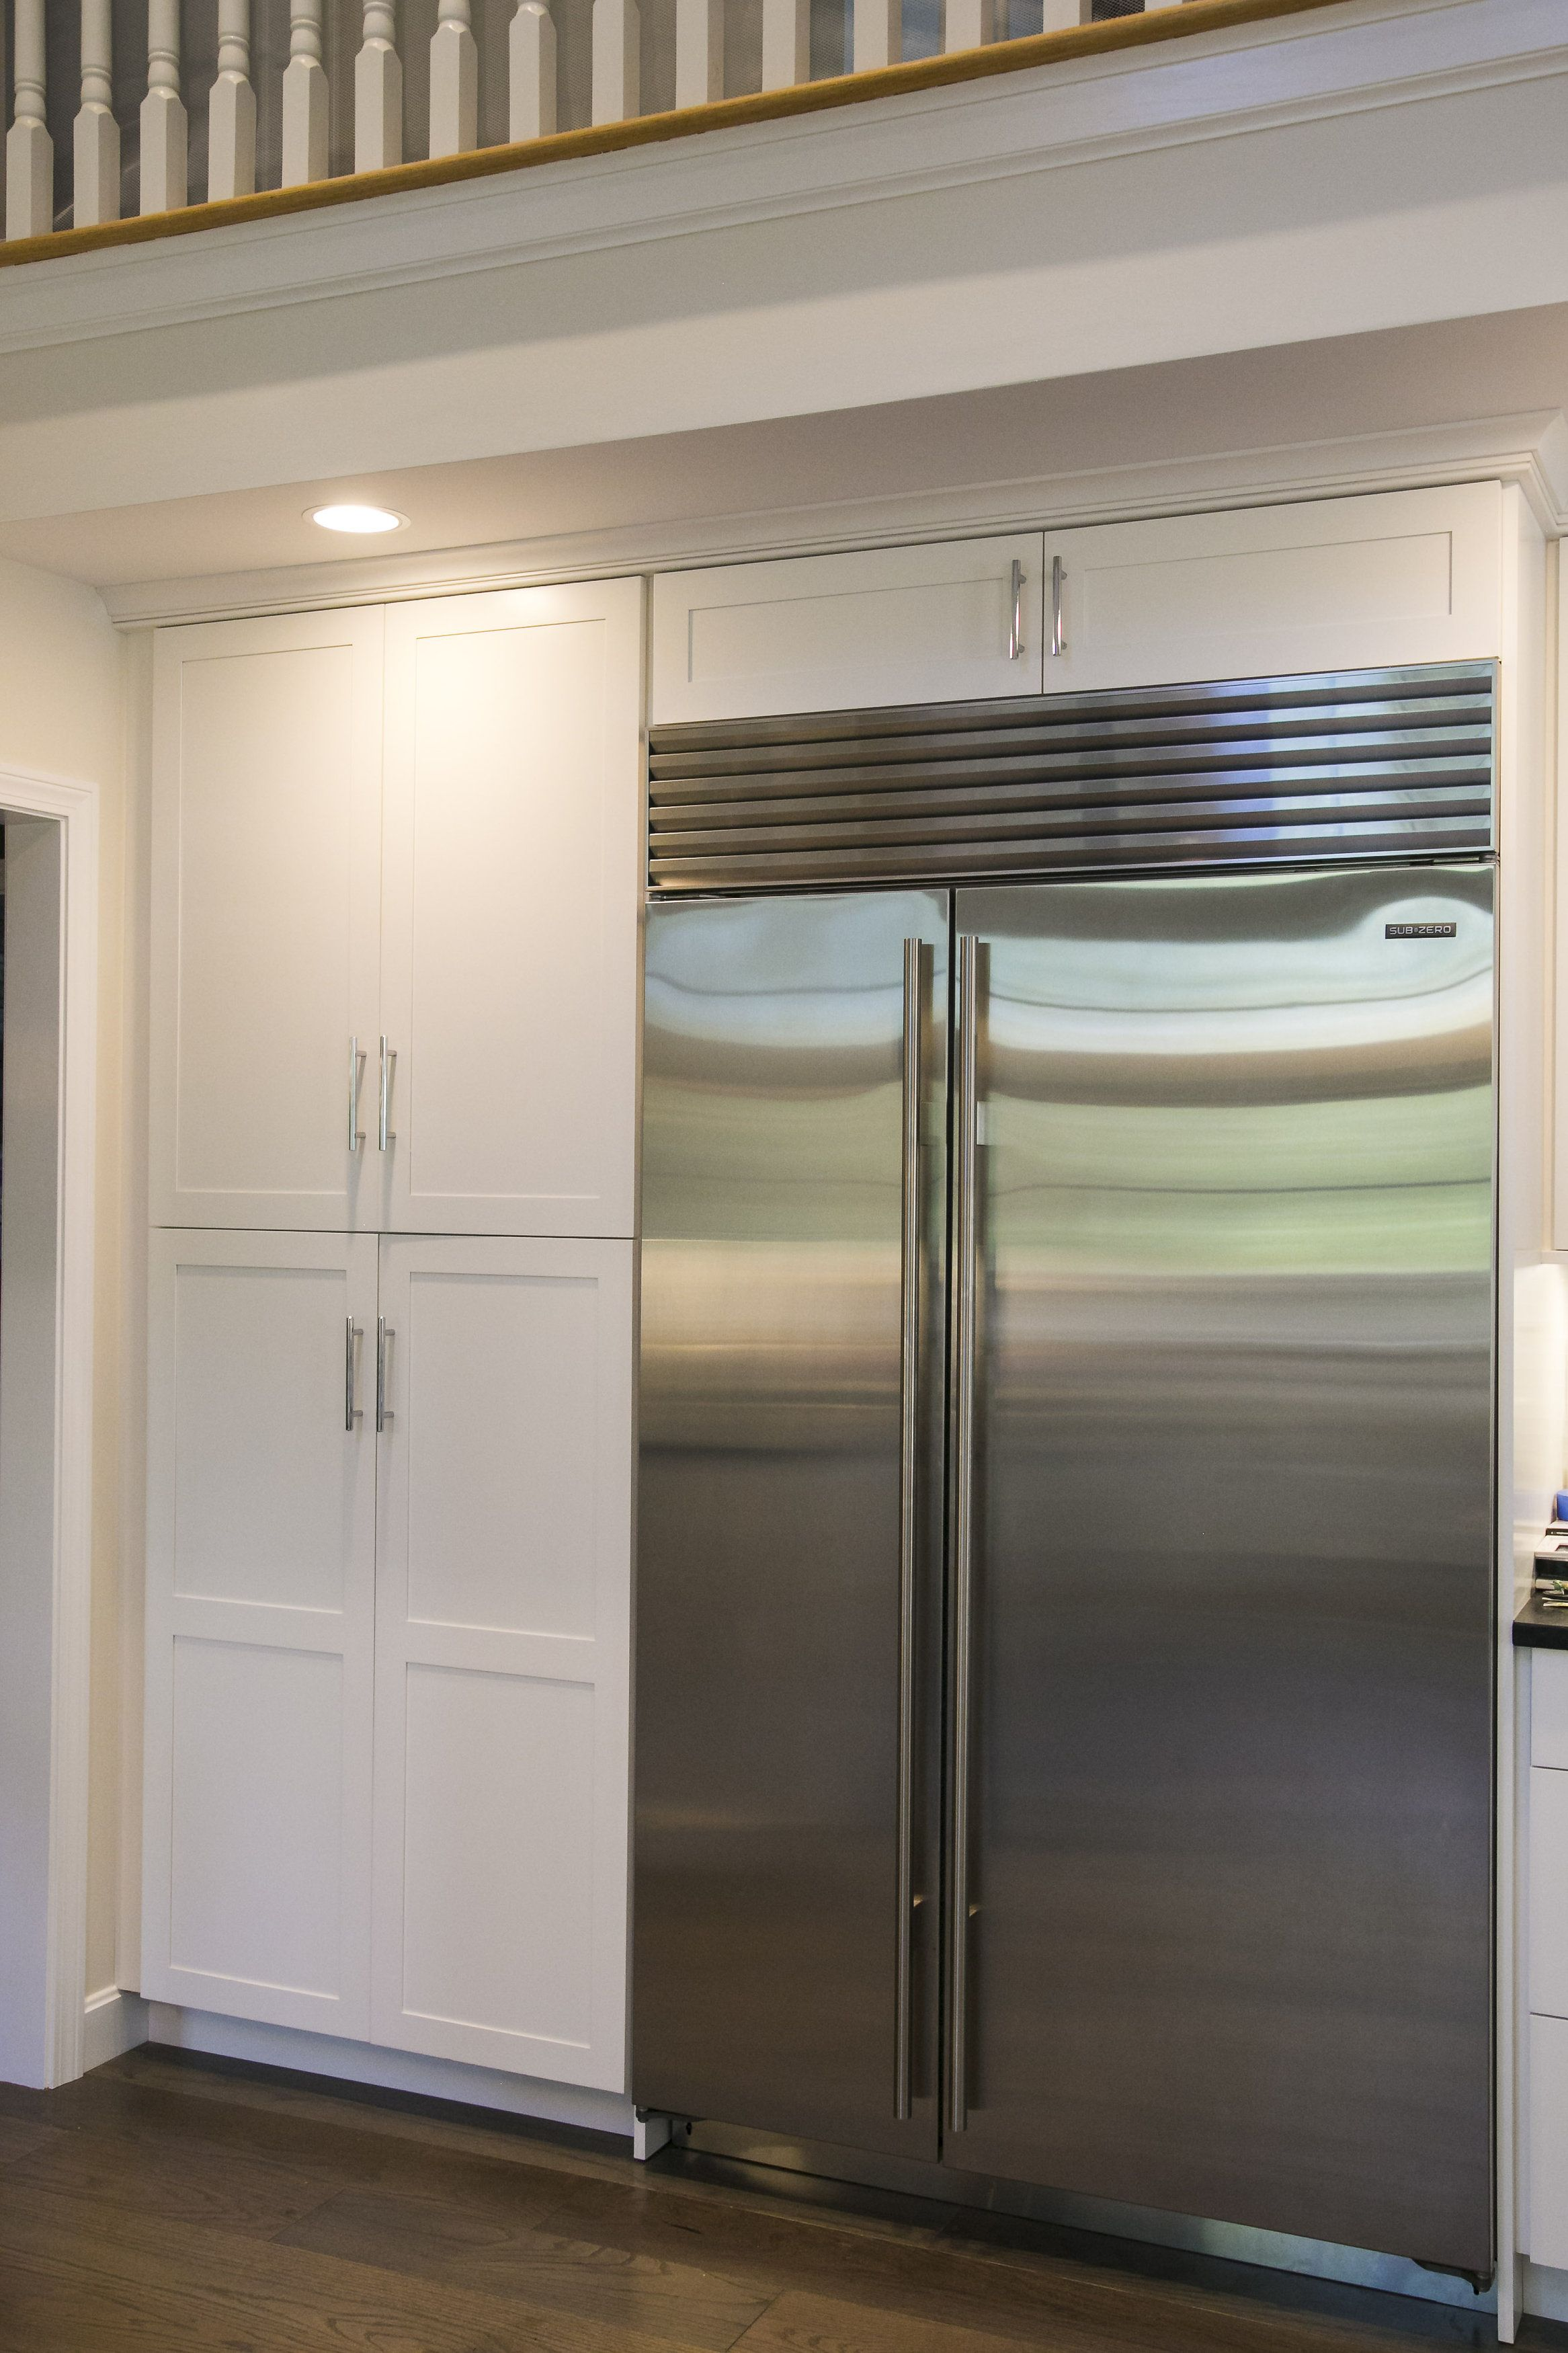 Kitchen Cabinets Around Refrigerator White Shaker Cabinets With Modern Brushed Nickel Finishes